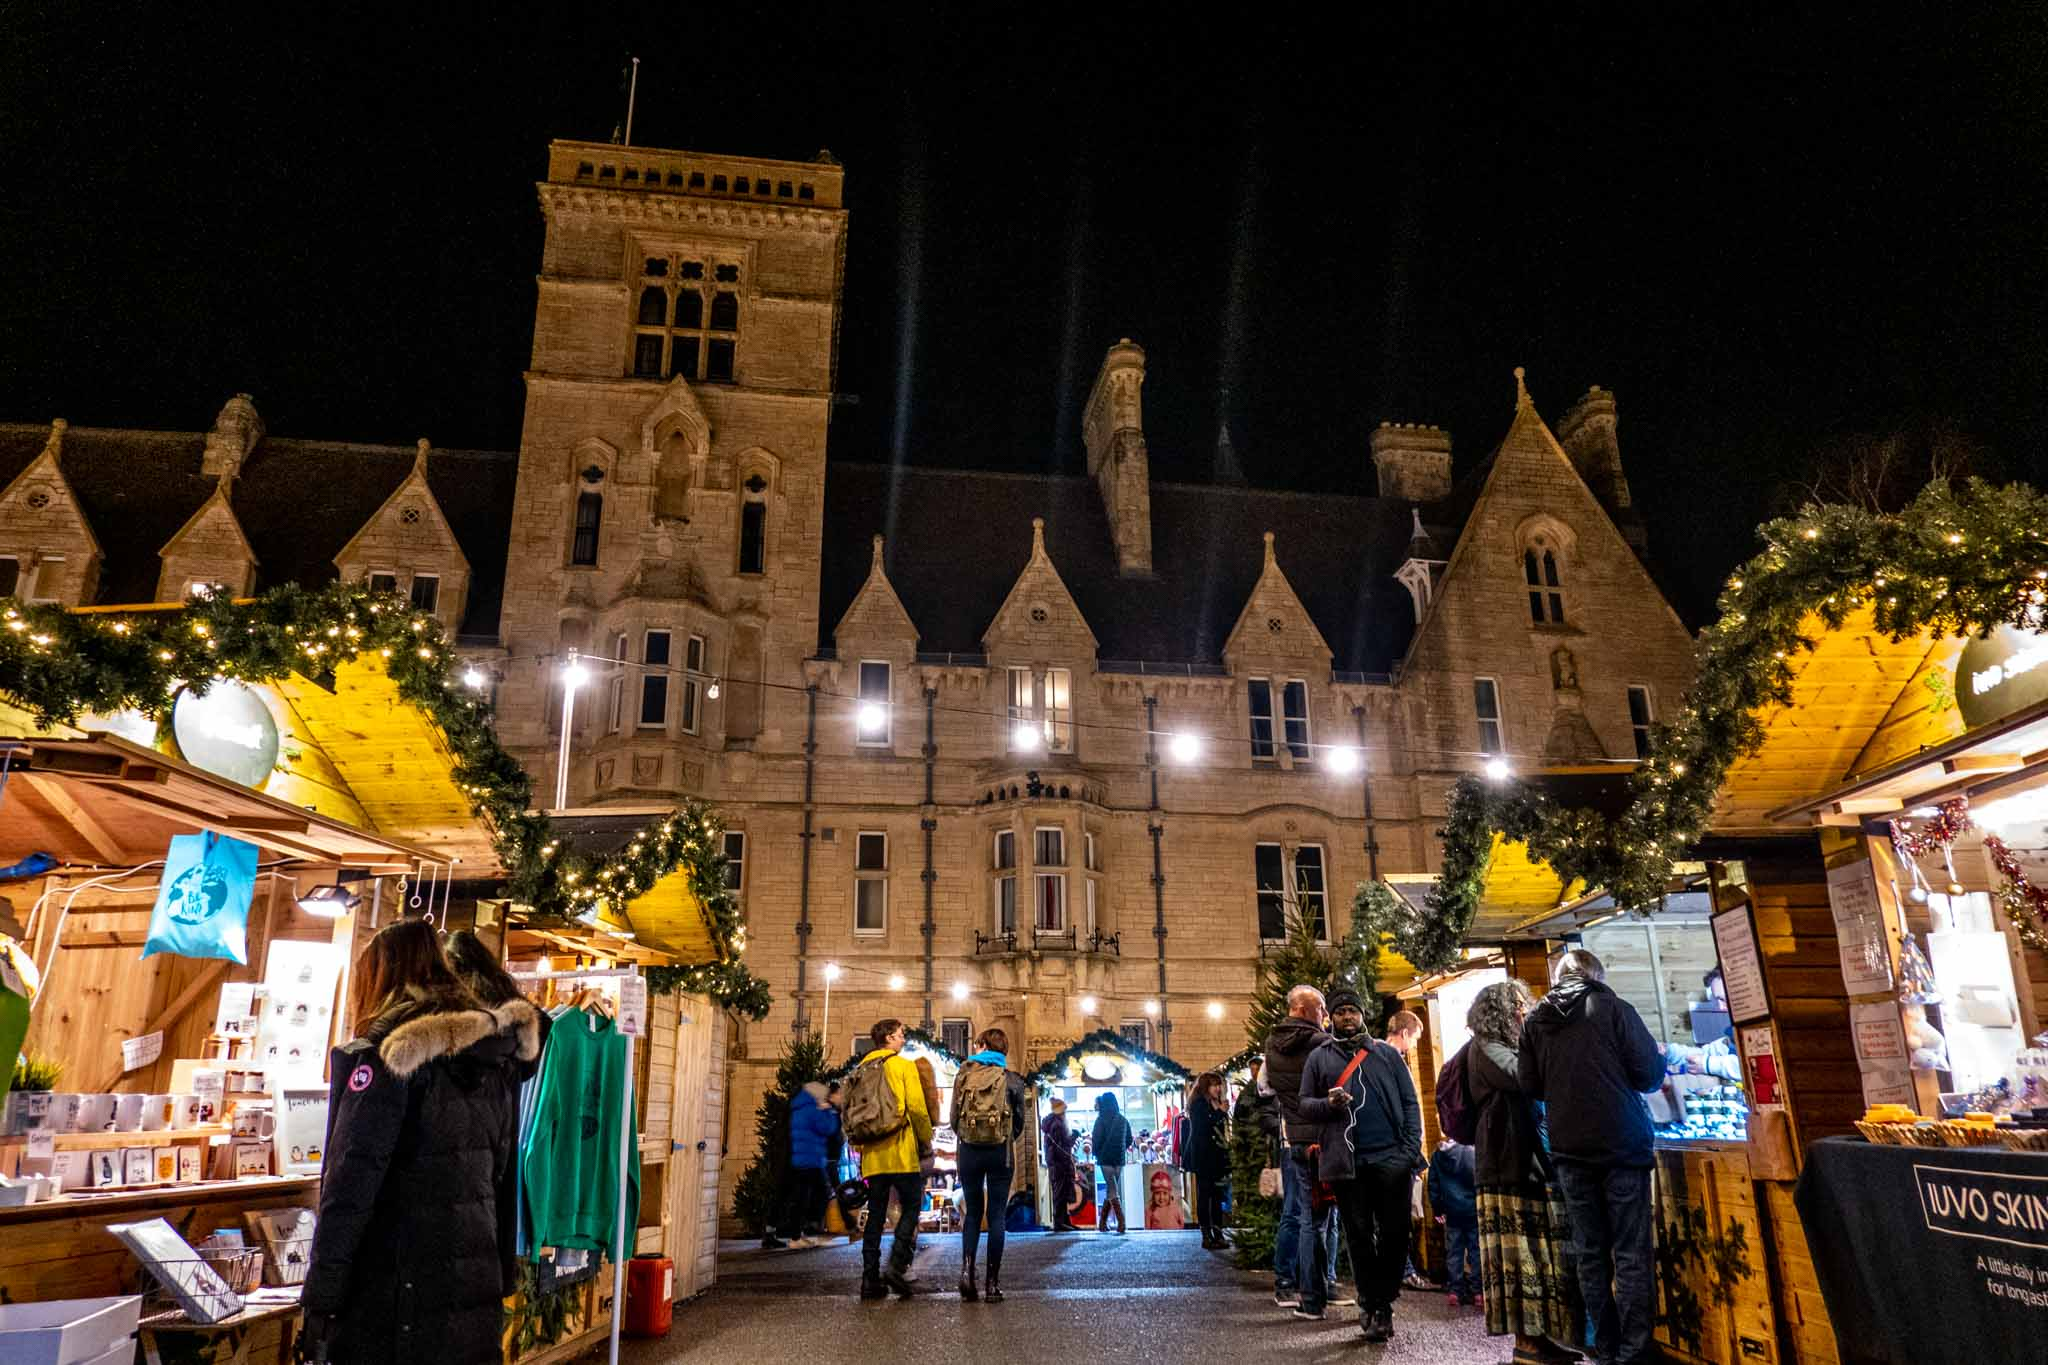 People shopping at the Oxford Christmas market with Balliol College buildings